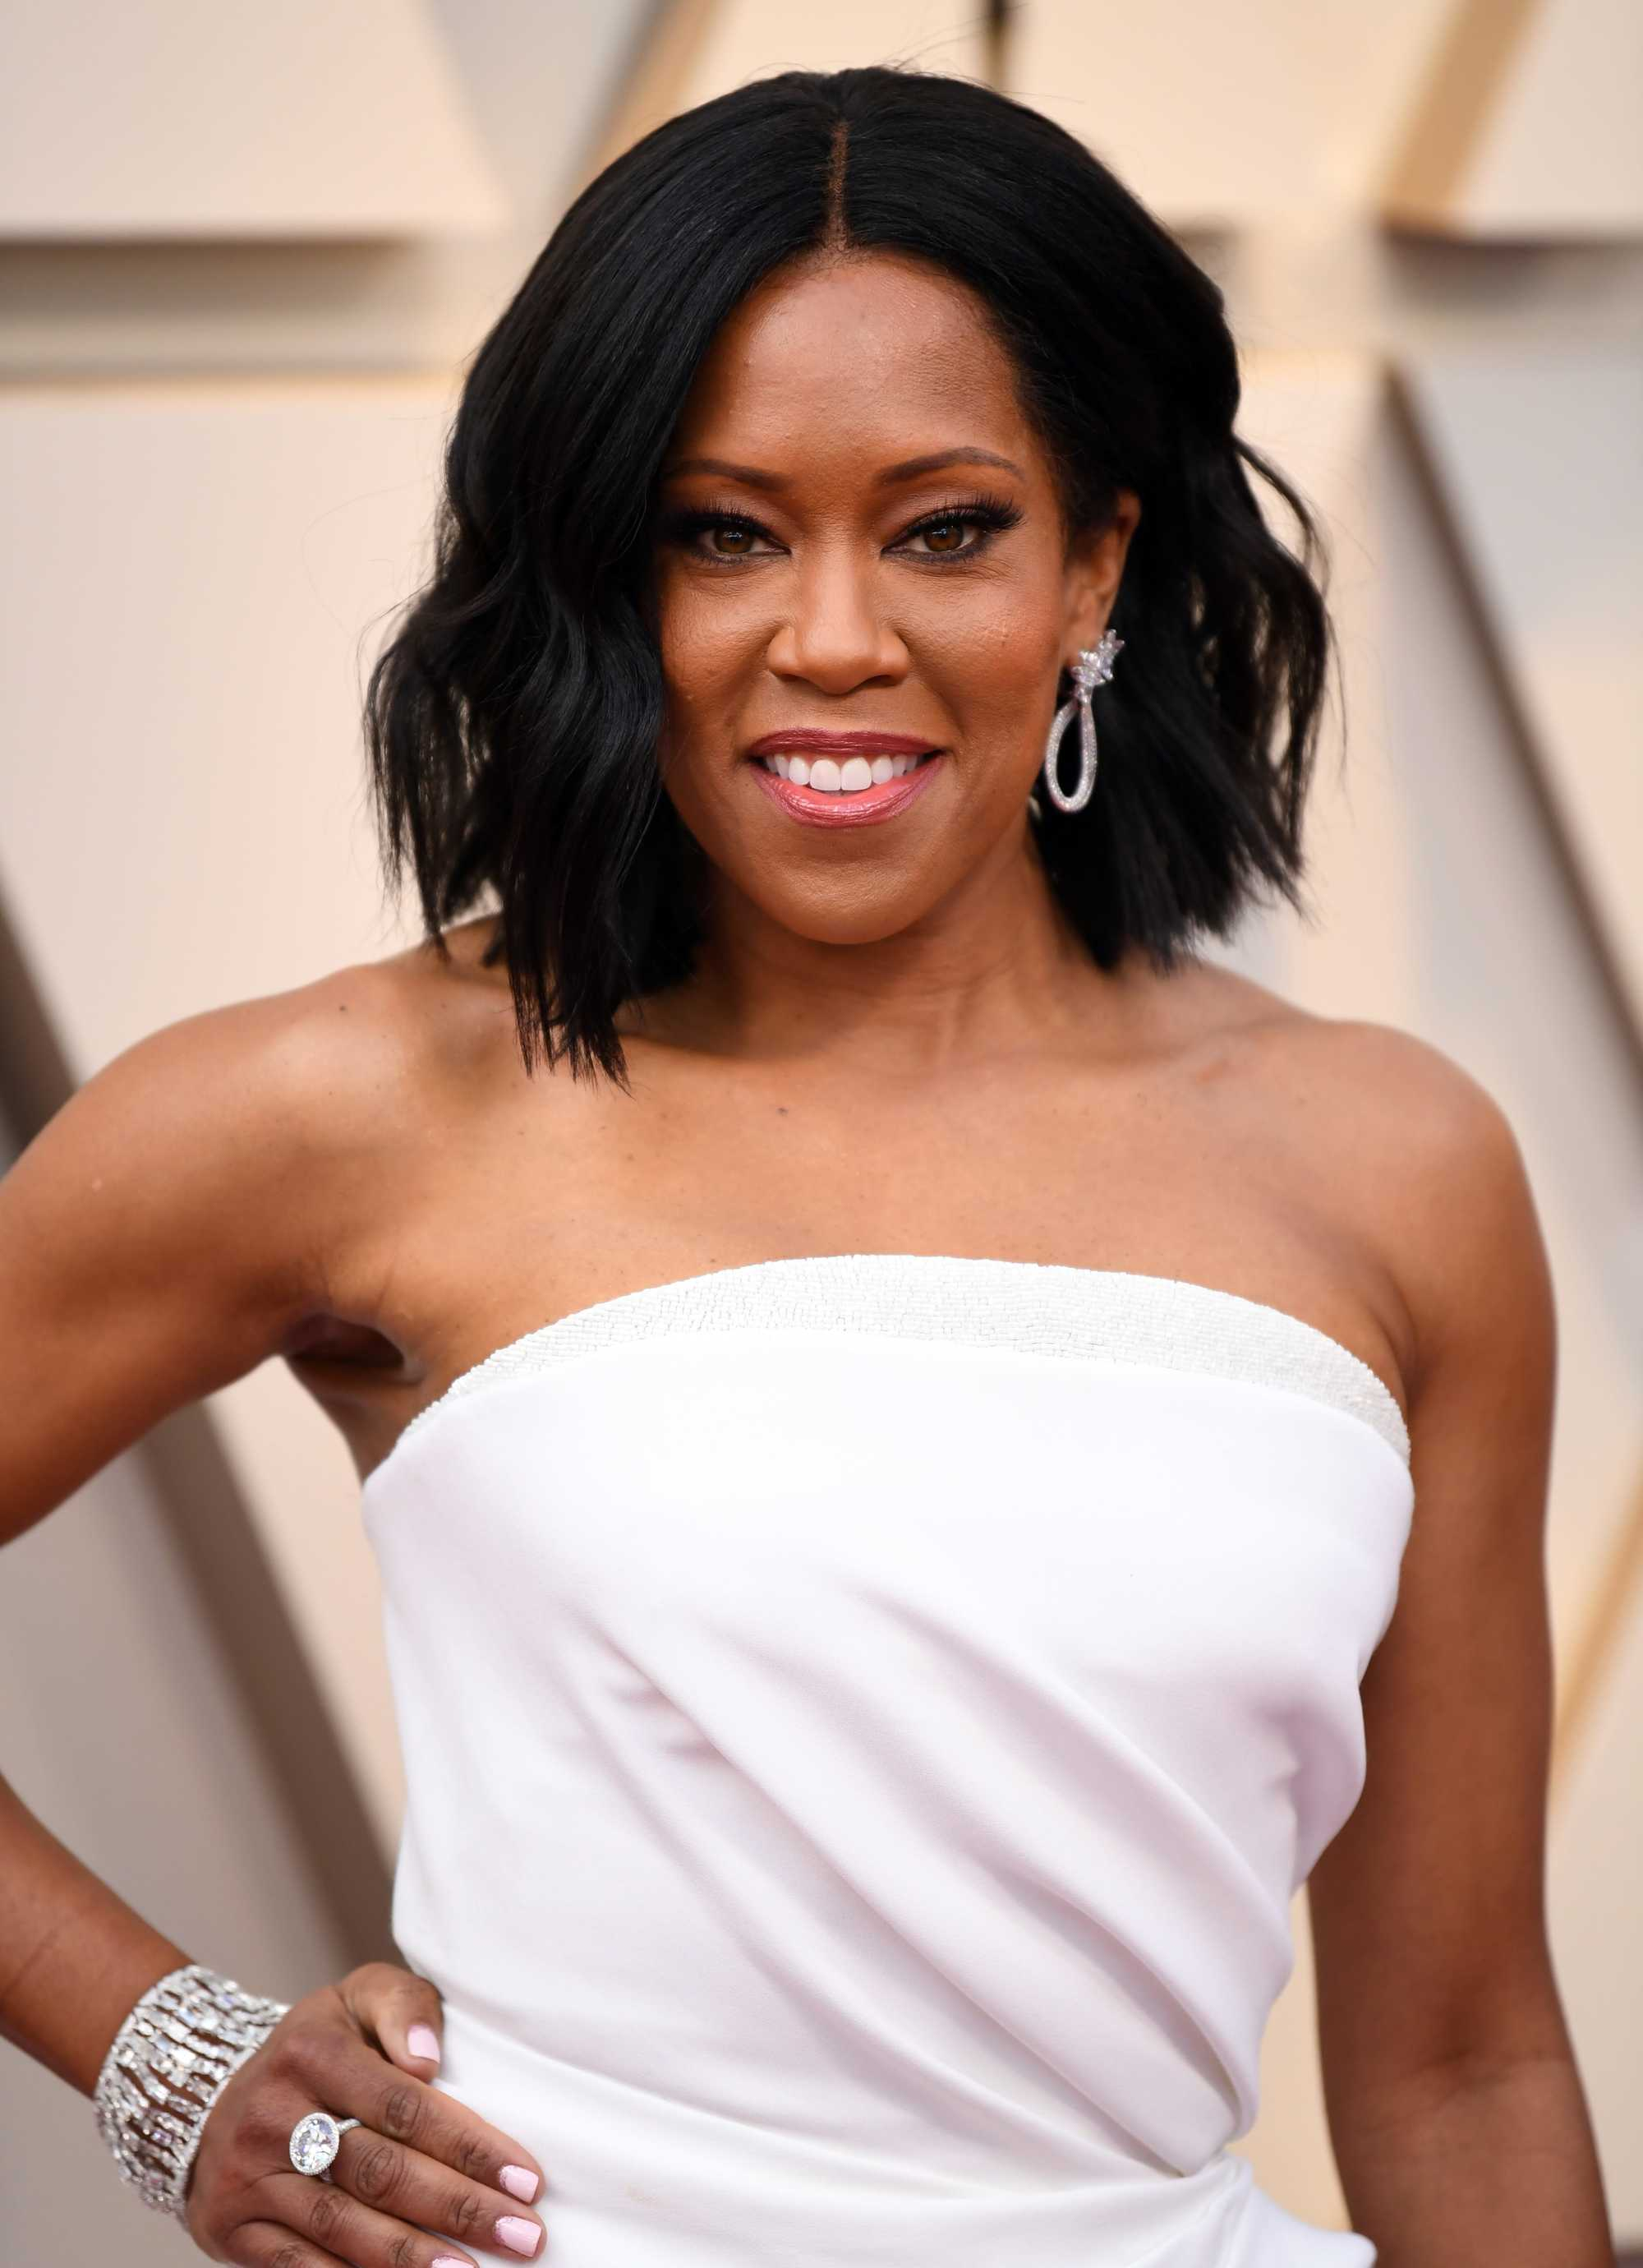 Oscars 2019 hairstyles: Regina King at the 2019 Oscars with dark brown hair in a tousled long bob, wearing a white strapless dress